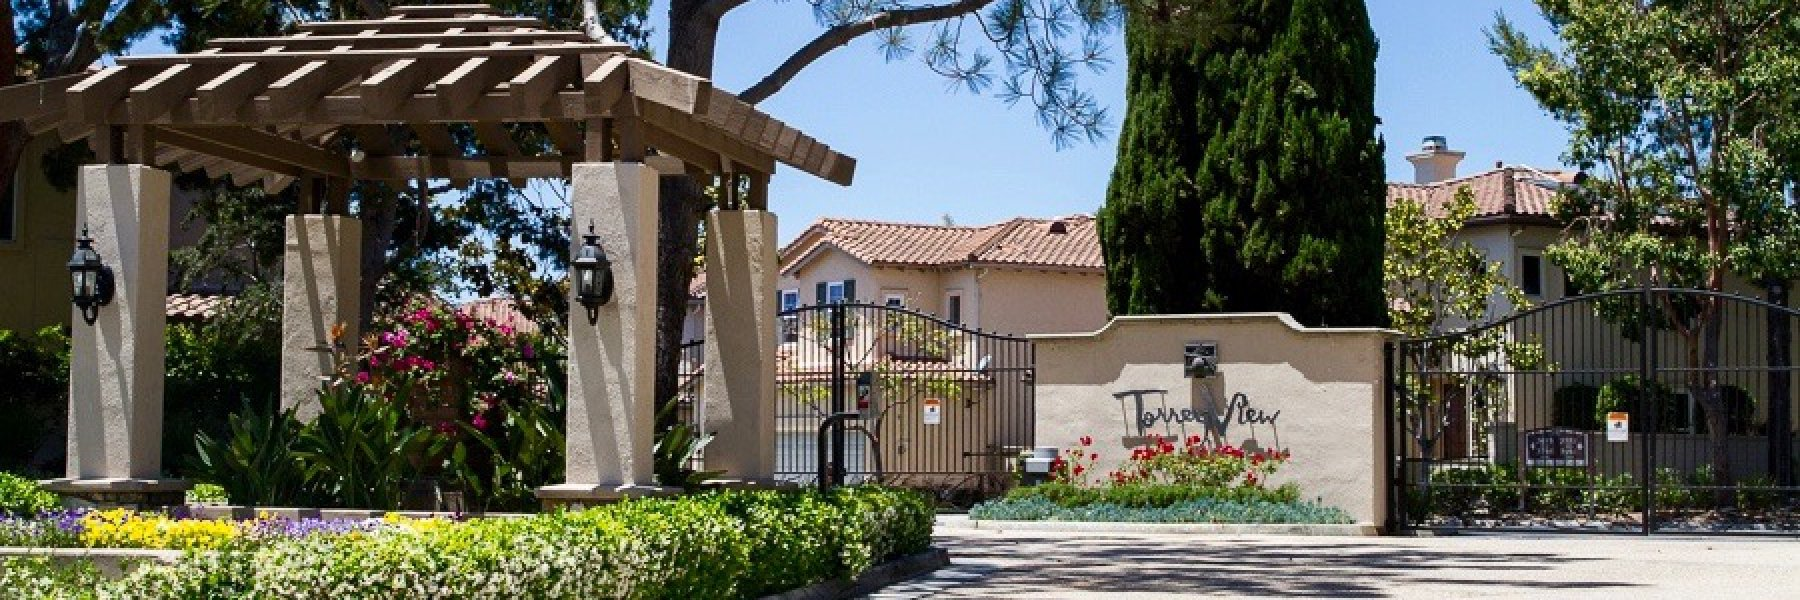 Torrey View is a community of homes in San Diego California